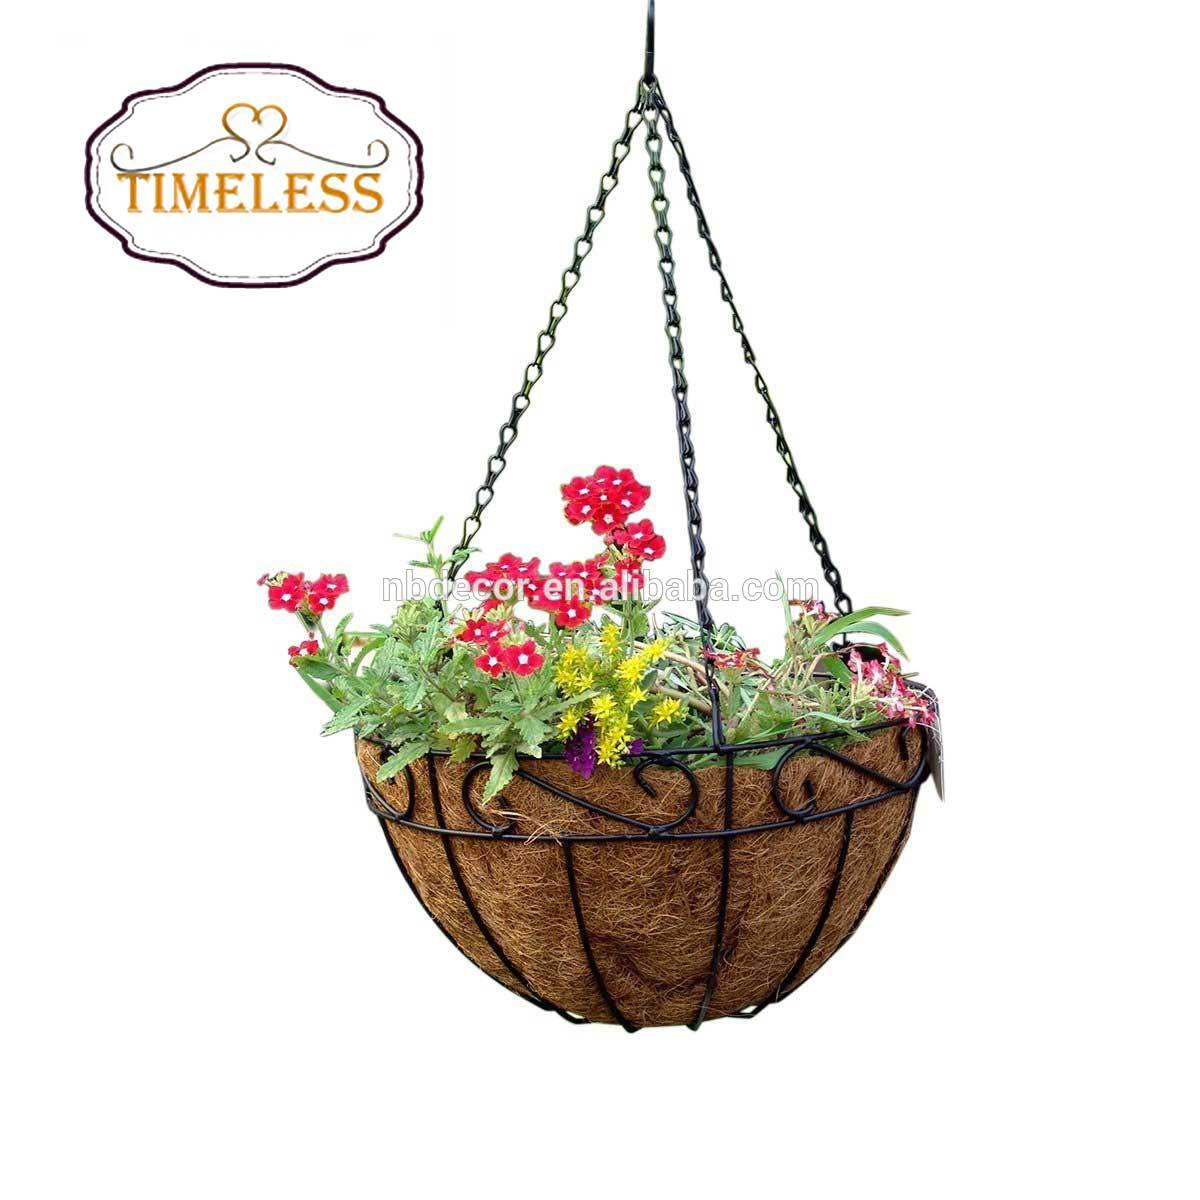 Factory Directly Metal Hanging Baskets For Planter 14 Inch Round Wire Plant Holder With Chain View Hanging Basket Tm Product Details From Ningbo Timeless Household Products Co Ltd On Alibaba Com